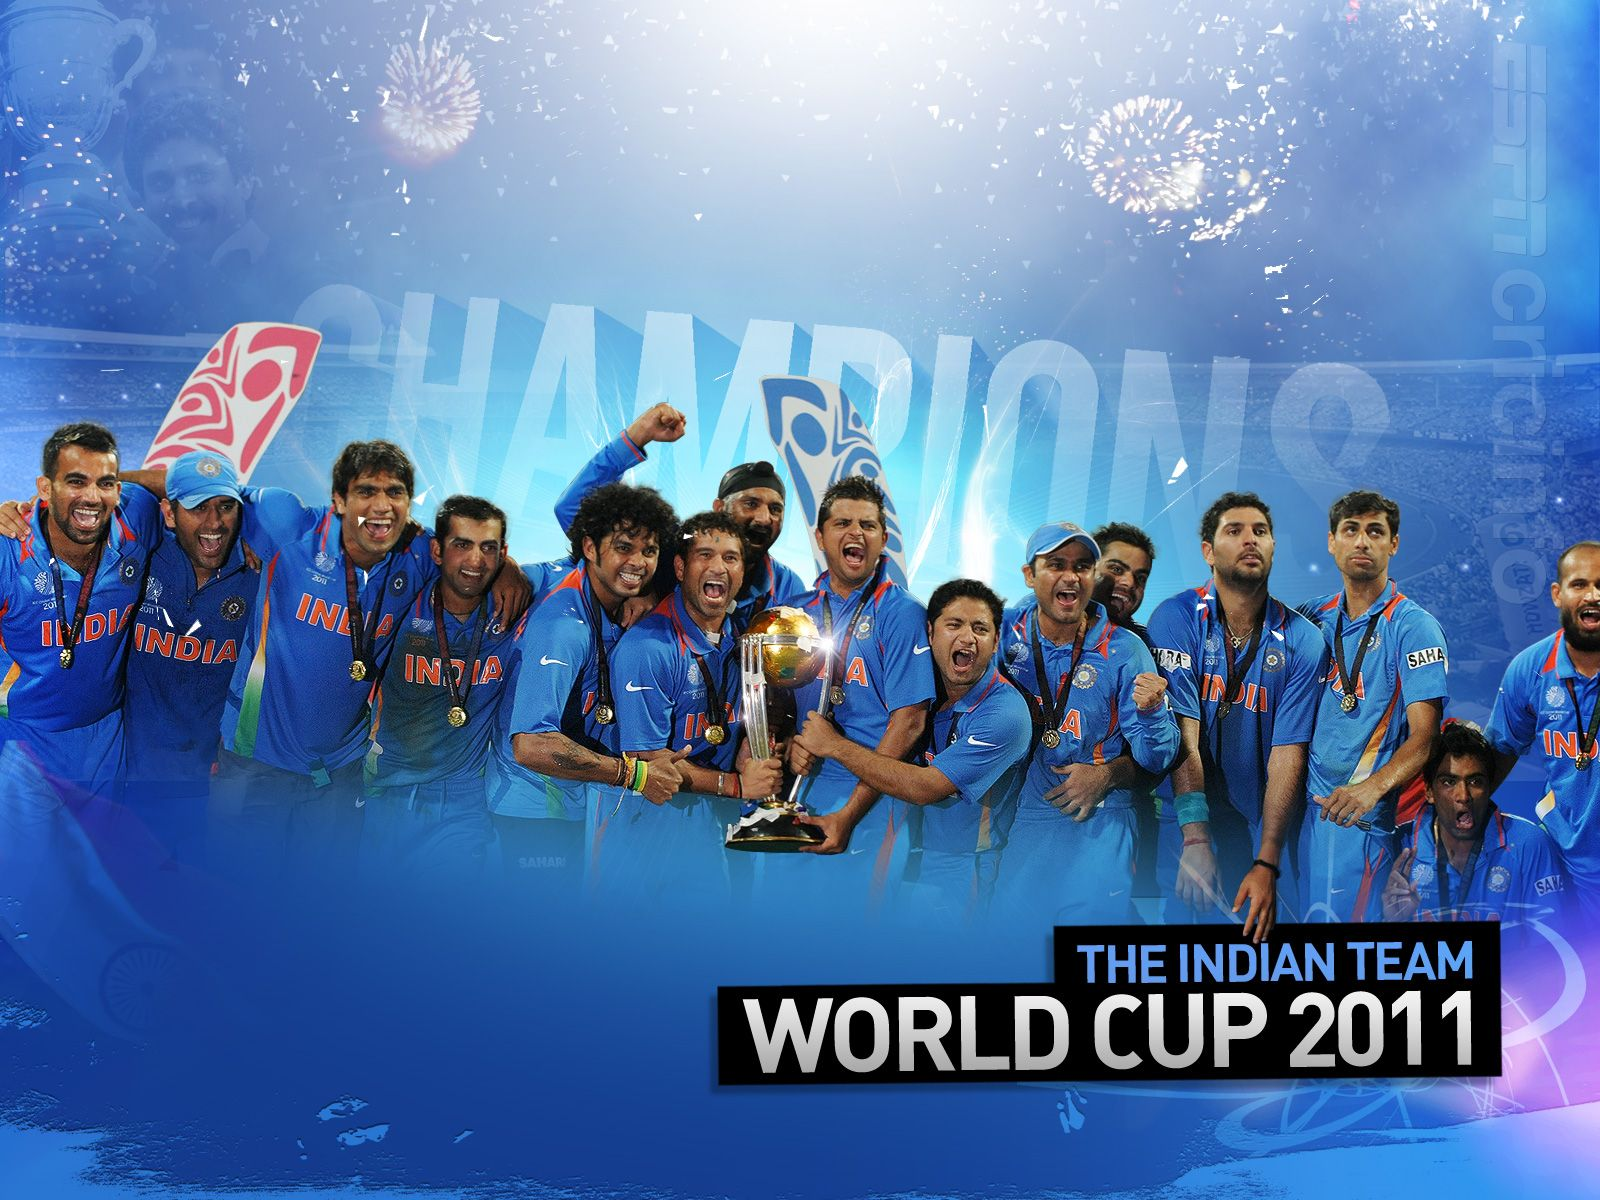 India Team World Cup 2011 Wallpapers | HD Wallpapers ...